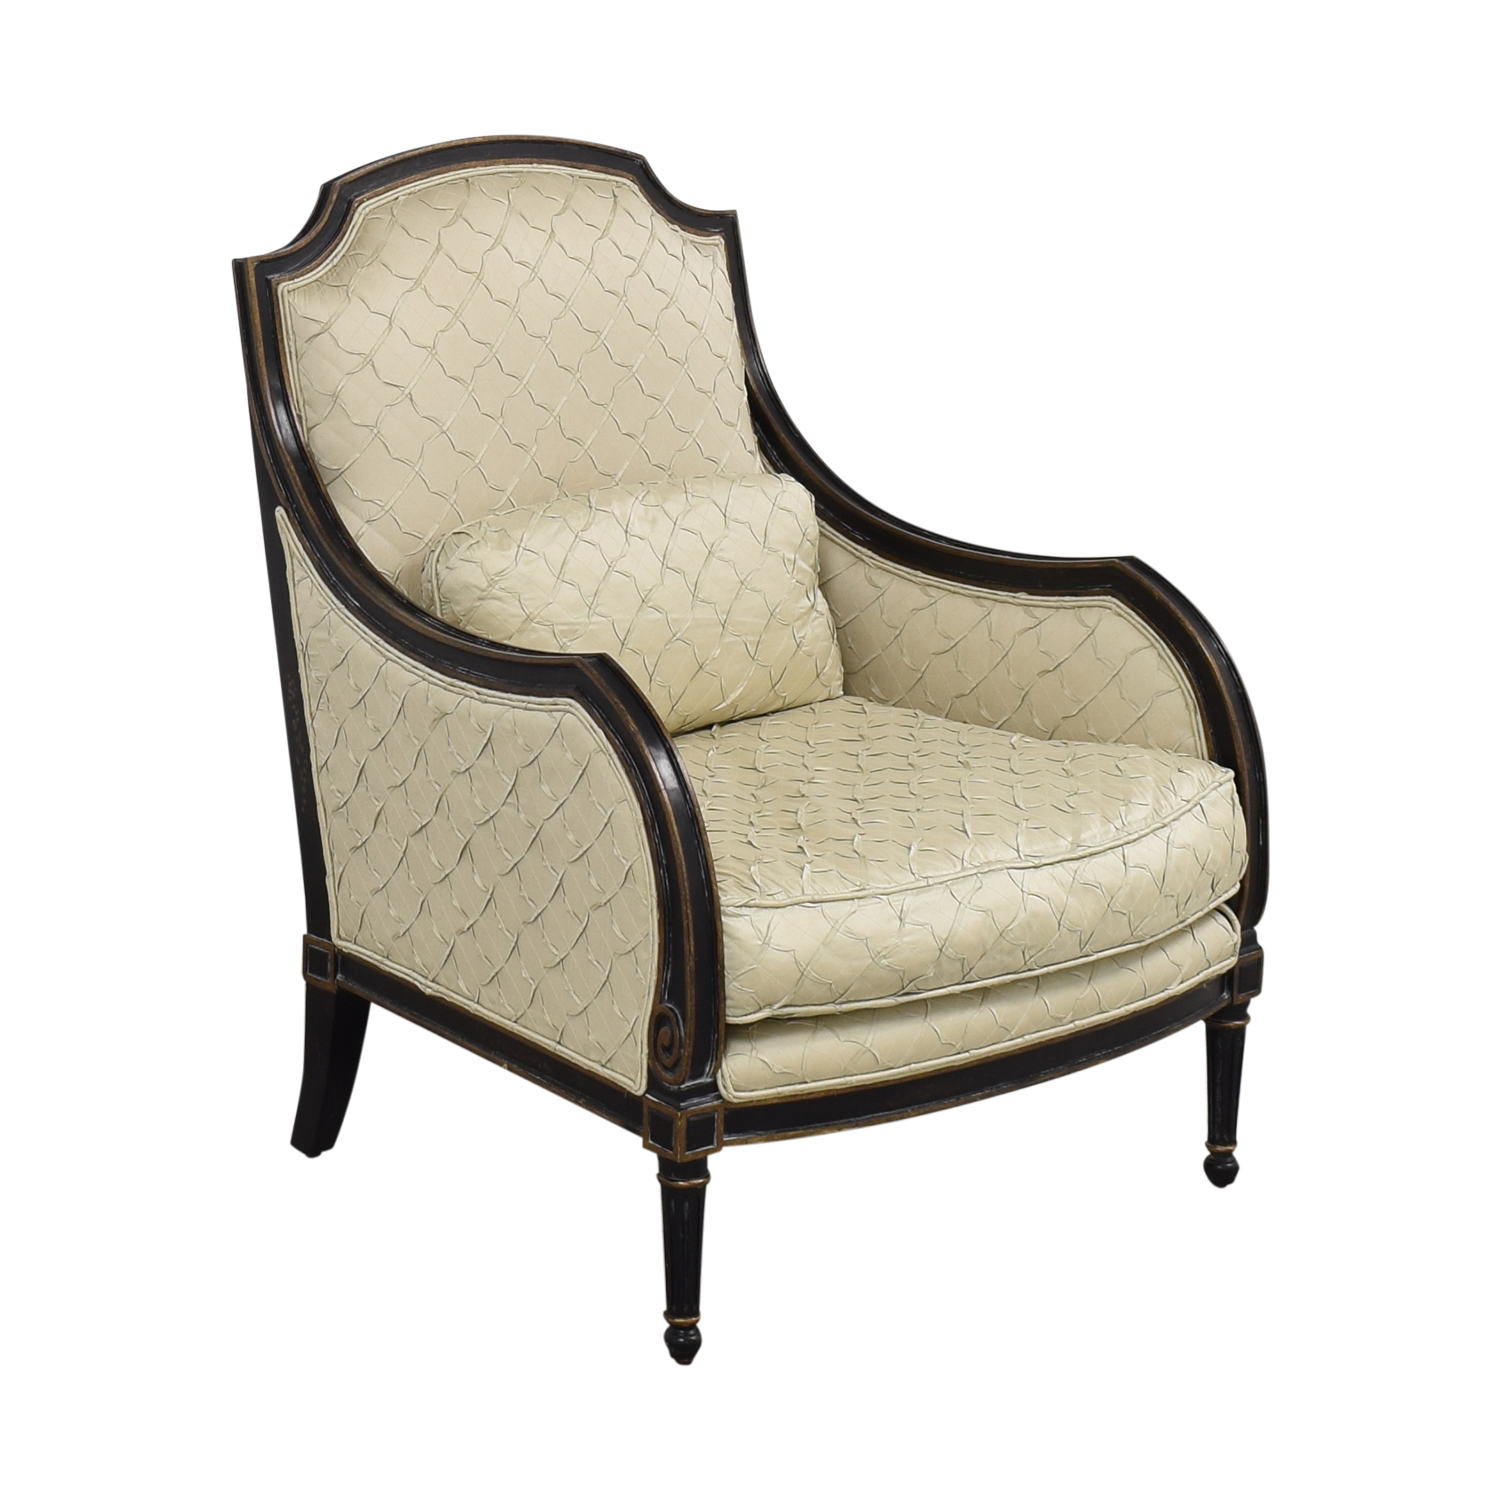 Jardine Ent Quilted Side Chair for sale